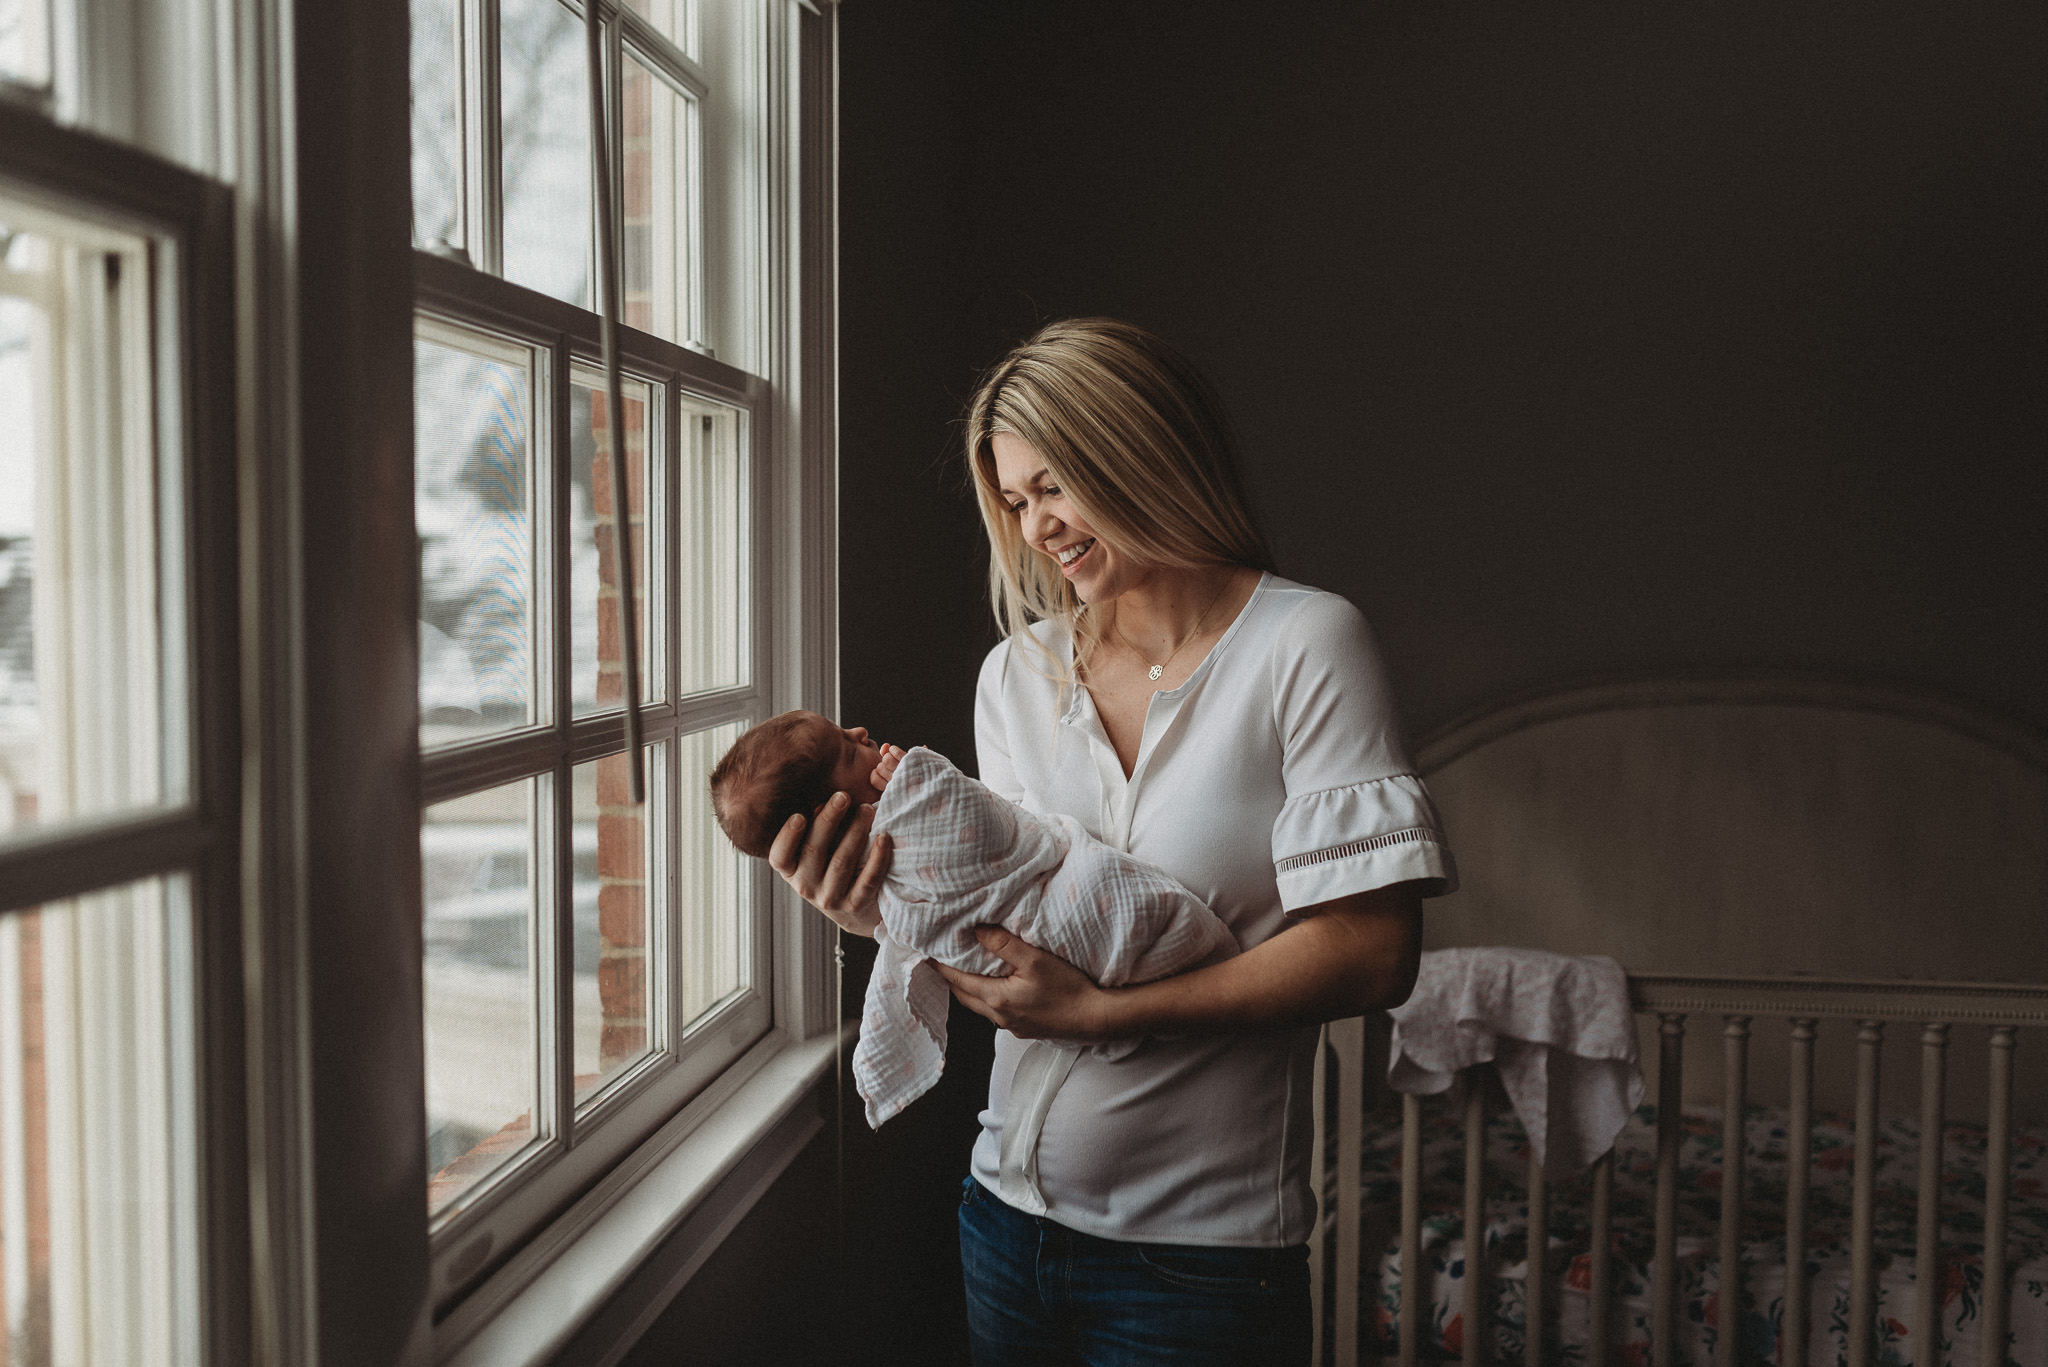 Newborn-Lifestyle-Photographer-Columbus-Ohio-Erika-Venci-Photography